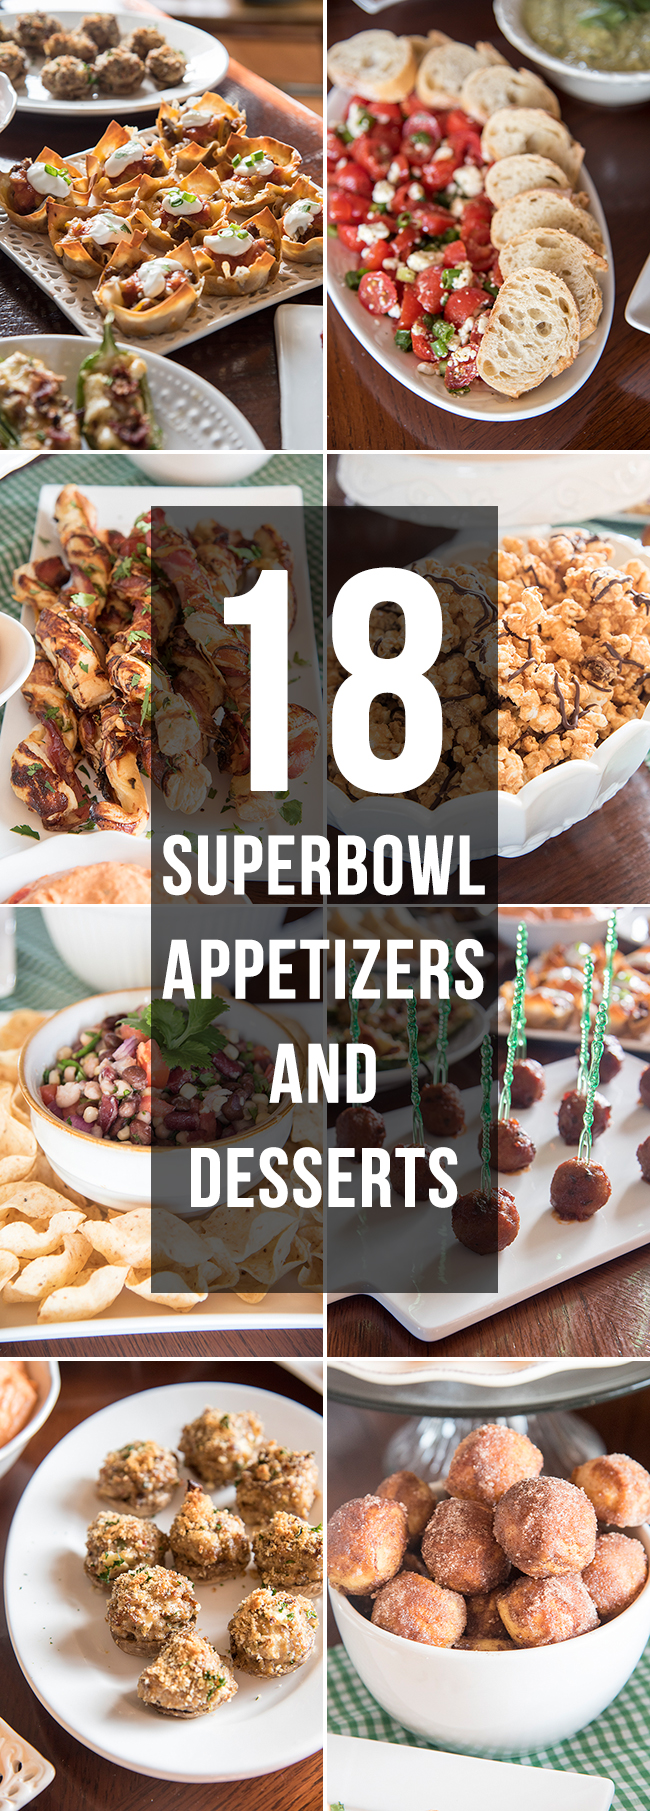 superbowl appetizers collage